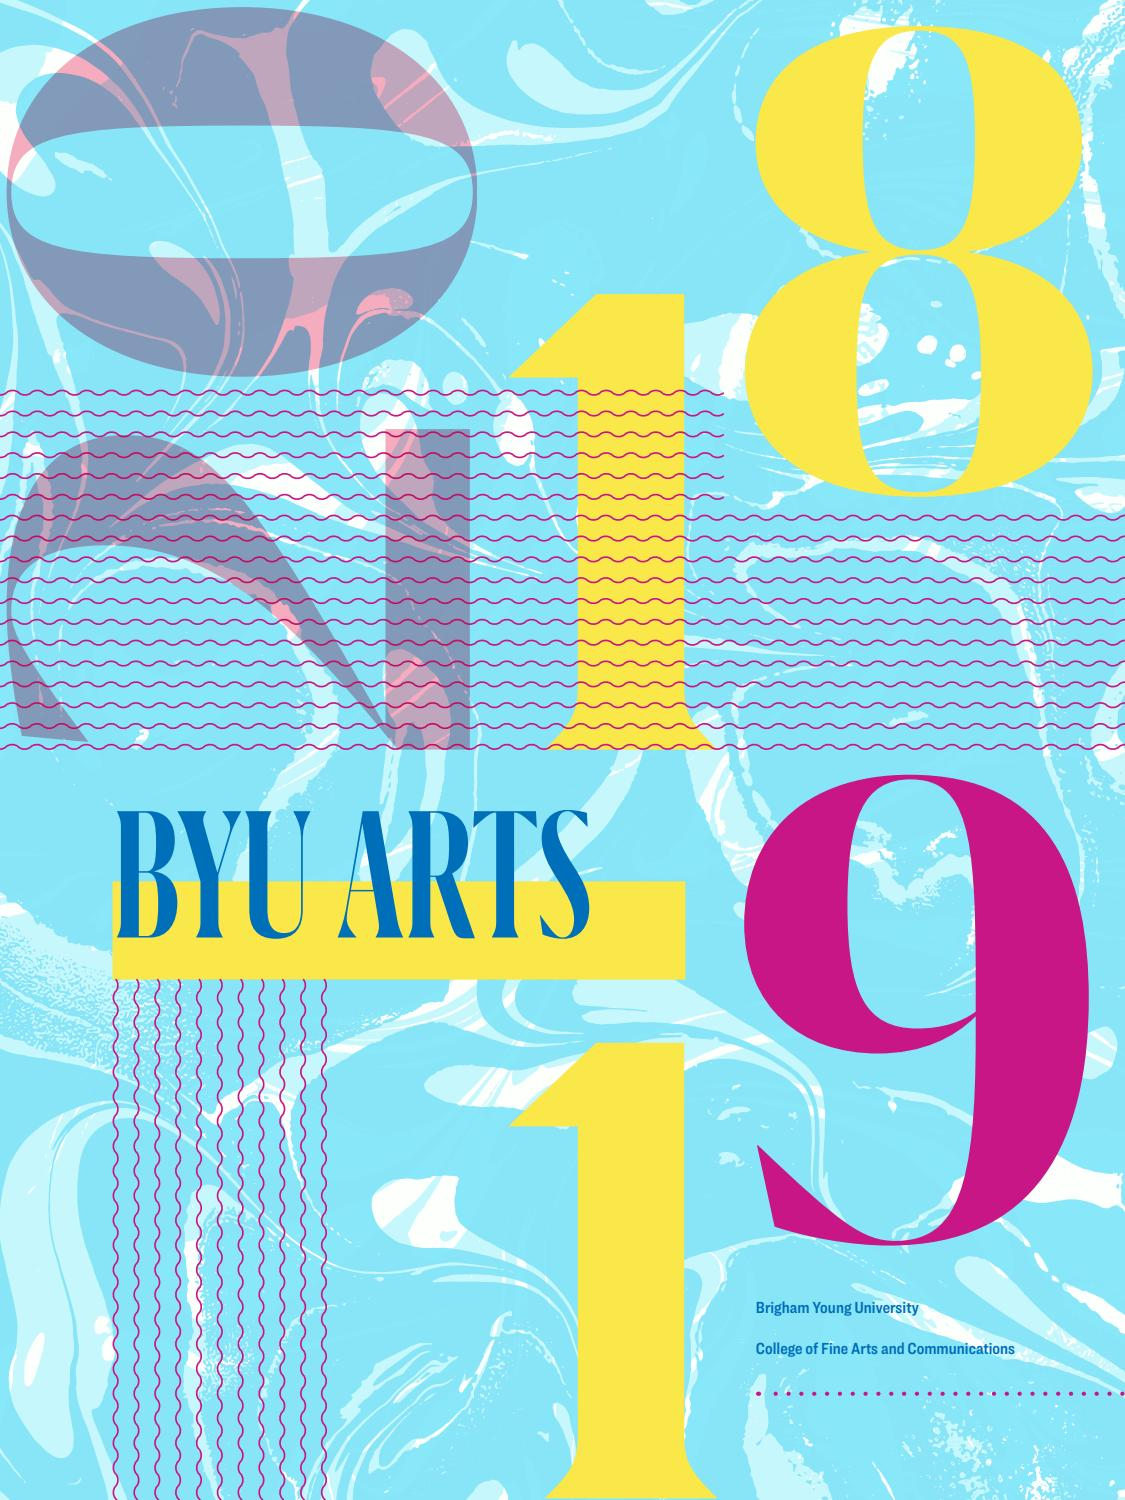 Byu Arts Season Brochure 2018 19 By Byu Arts Issuu I made this lyric video for my favorite musical dear evan hansen! byu arts season brochure 2018 19 by byu